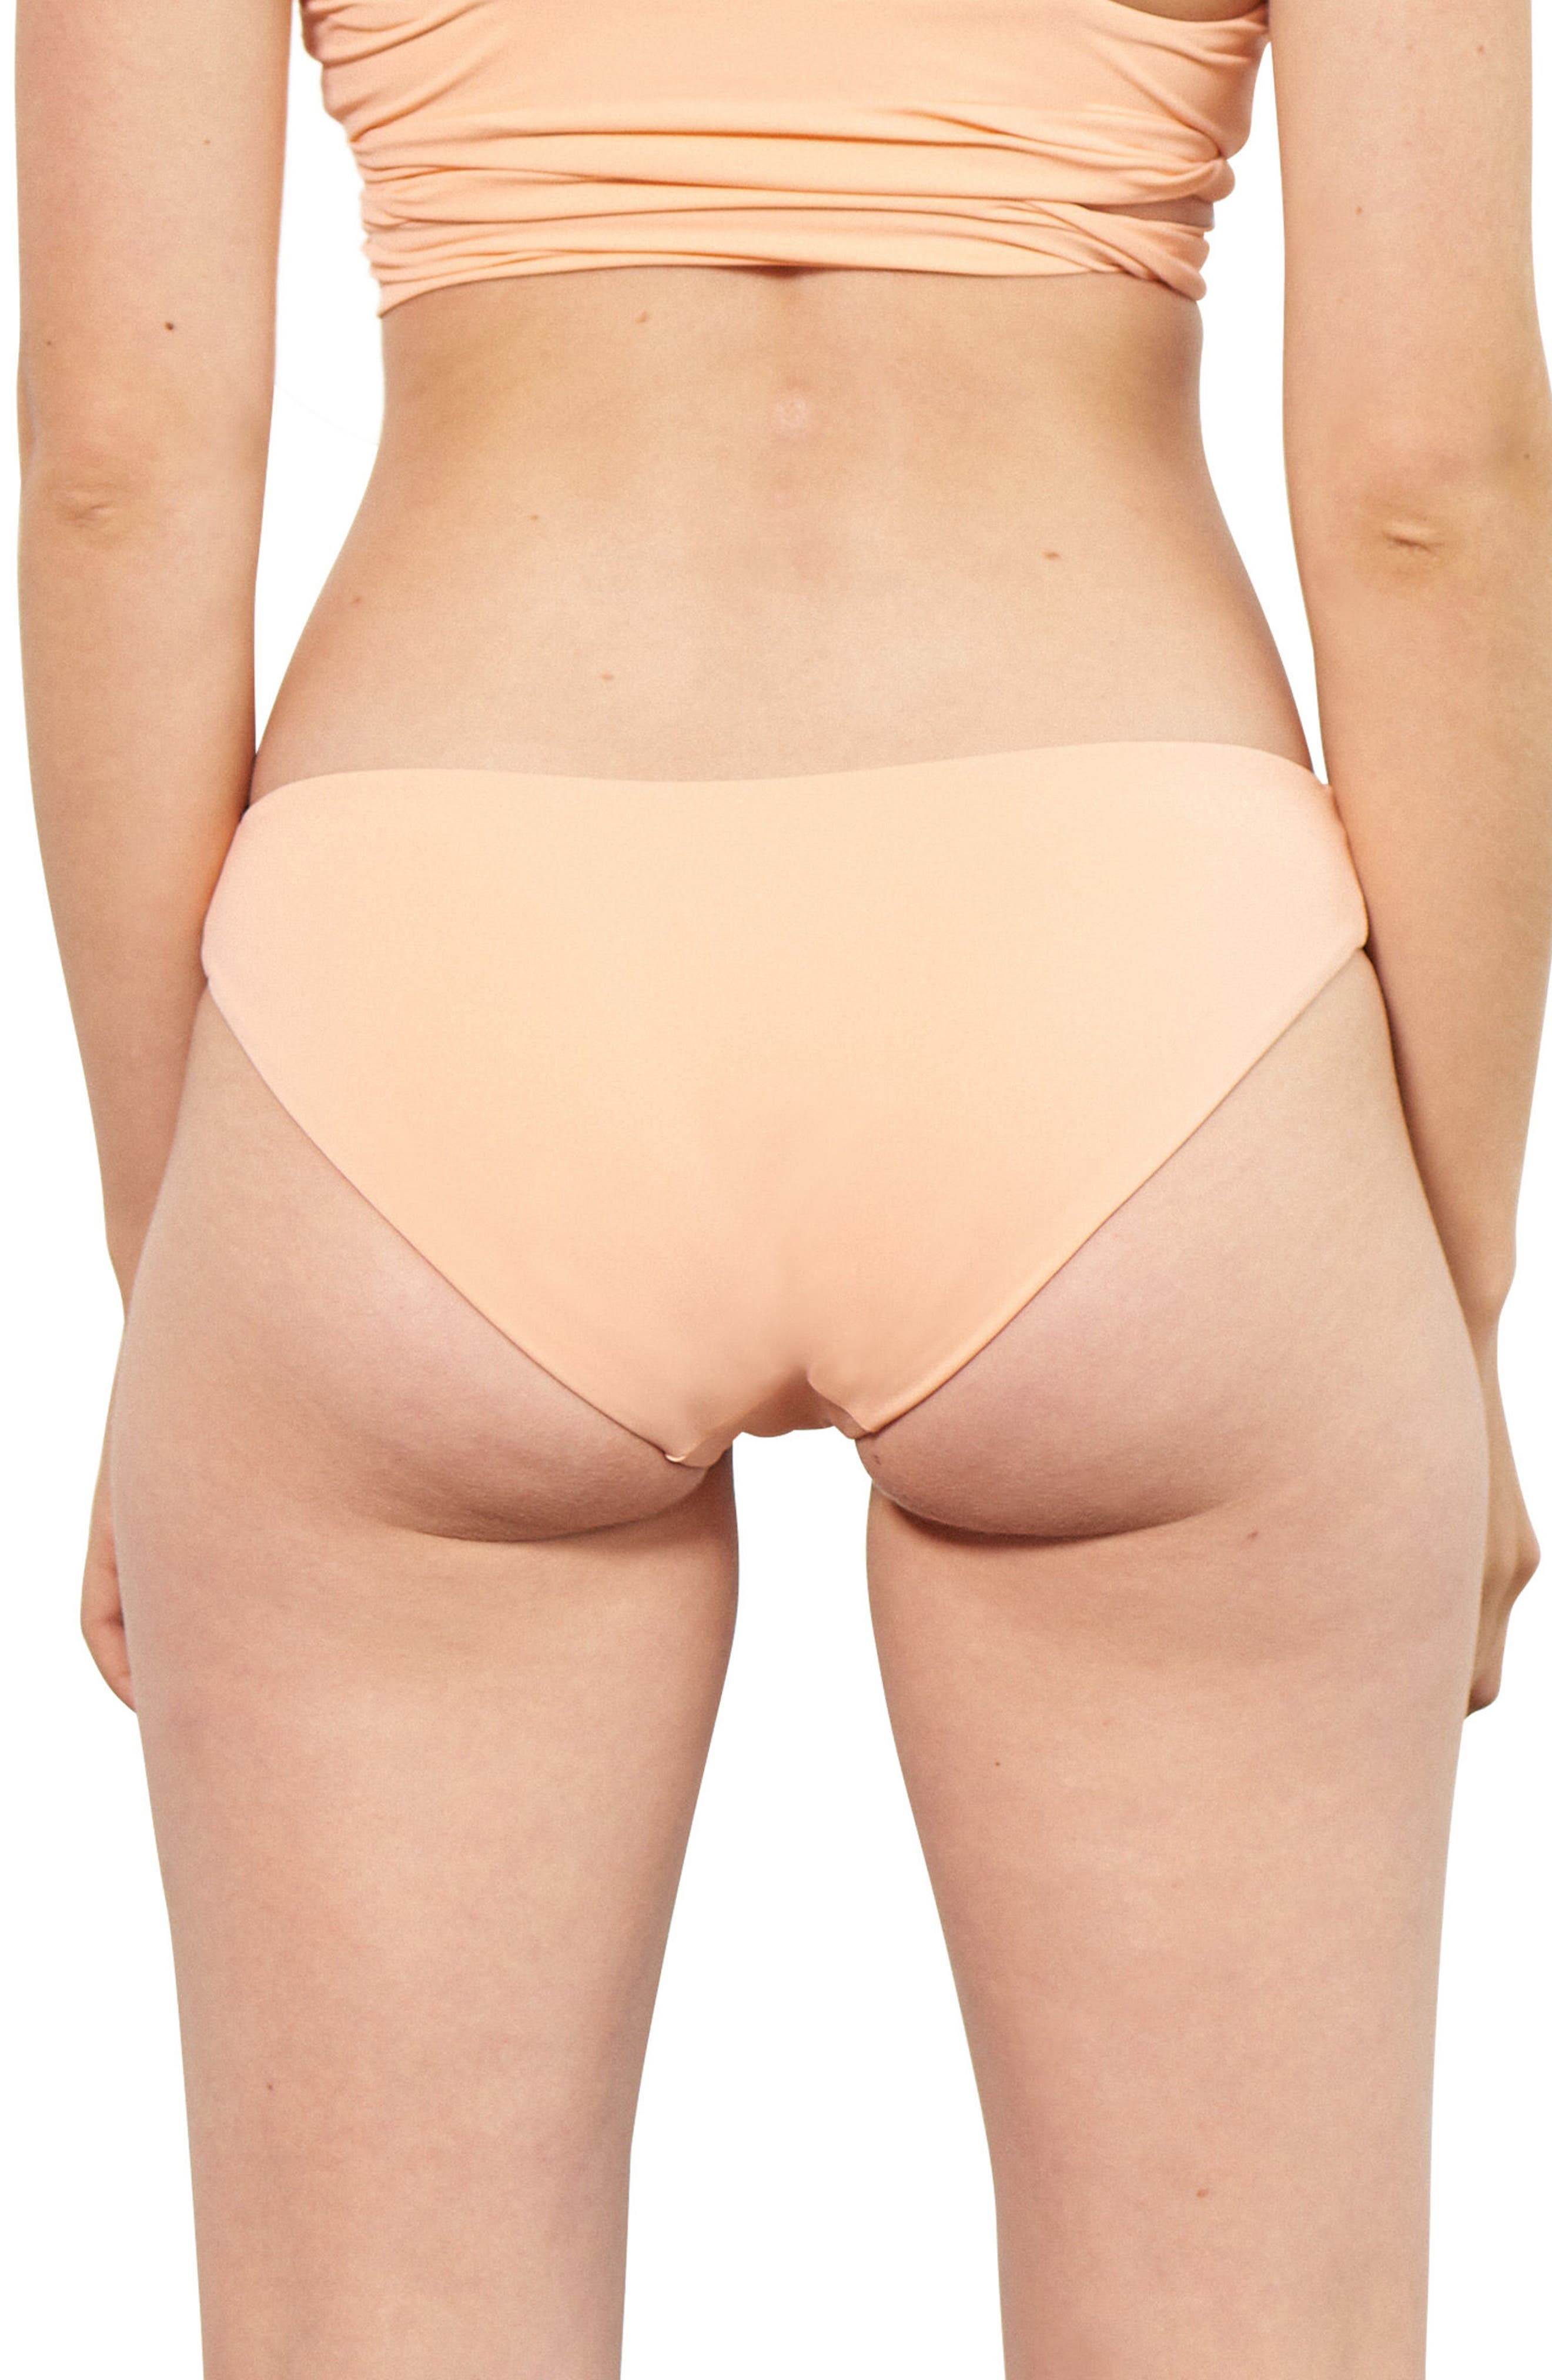 Zoa Hipster Bikini Bottoms,                             Alternate thumbnail 2, color,                             683